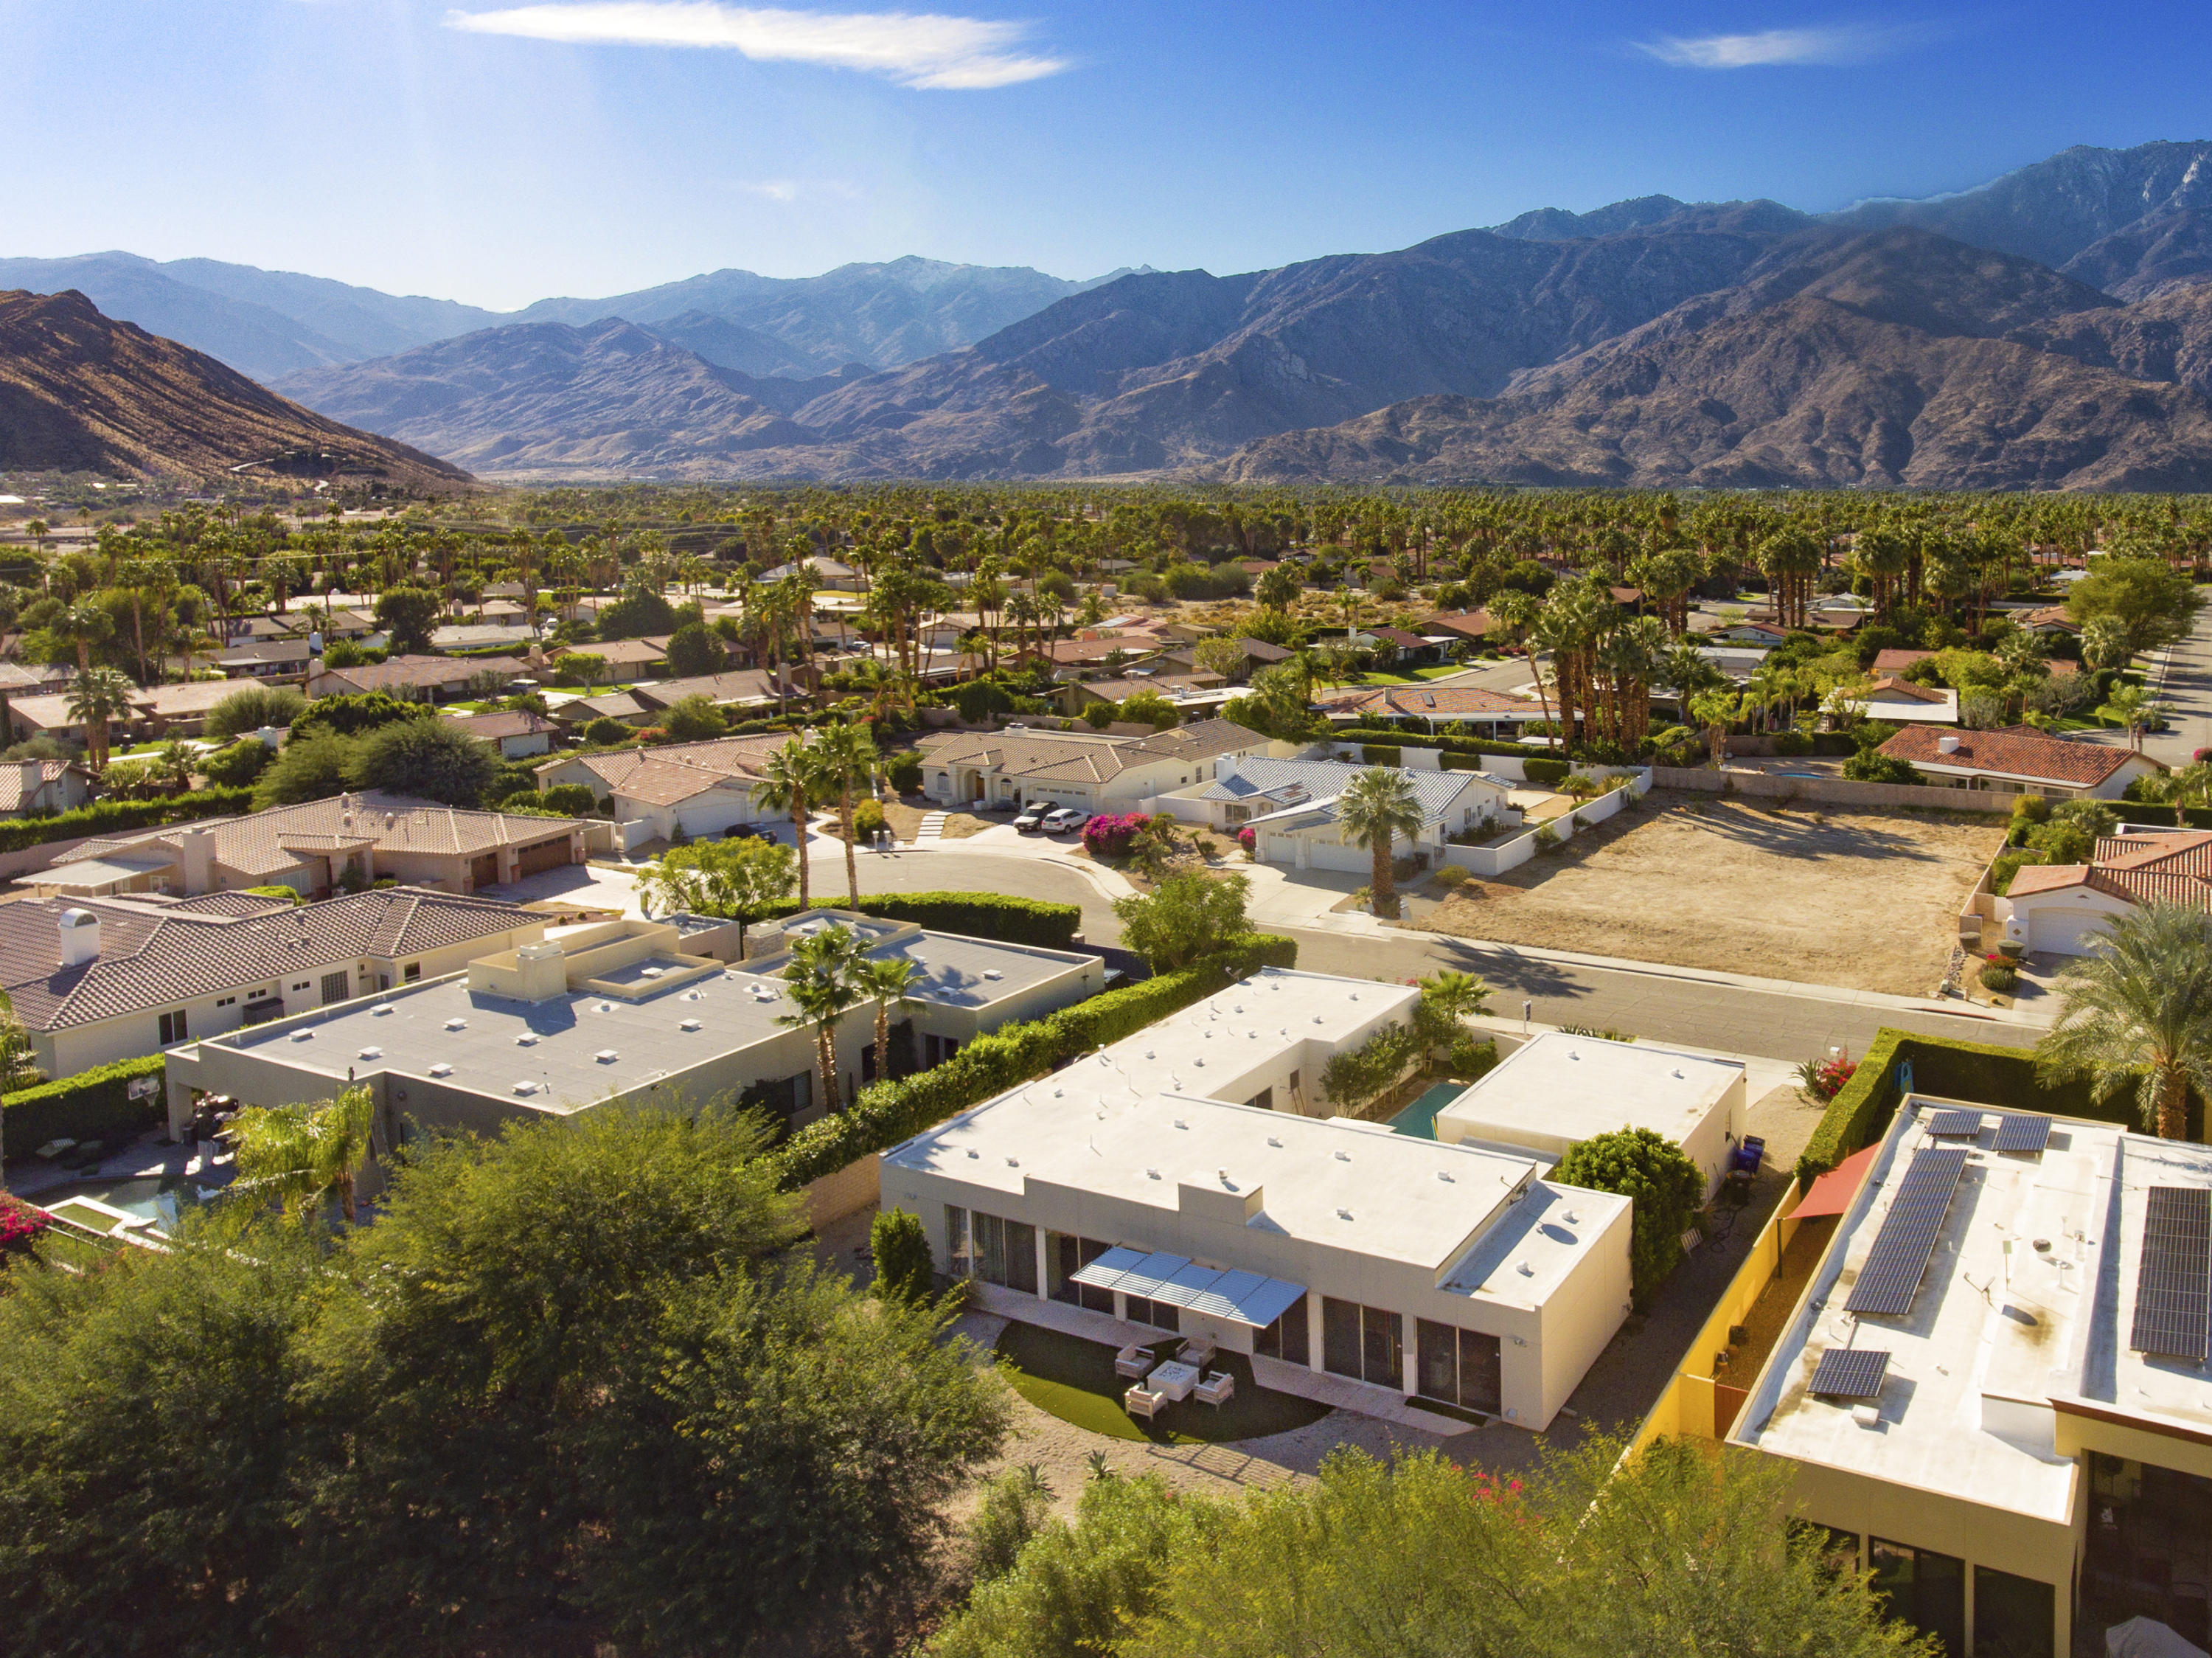 1490 Sonora Court, Palm Springs, California 92264, 4 Bedrooms Bedrooms, ,4 BathroomsBathrooms,Residential,For Sale,1490 Sonora Court,219041381